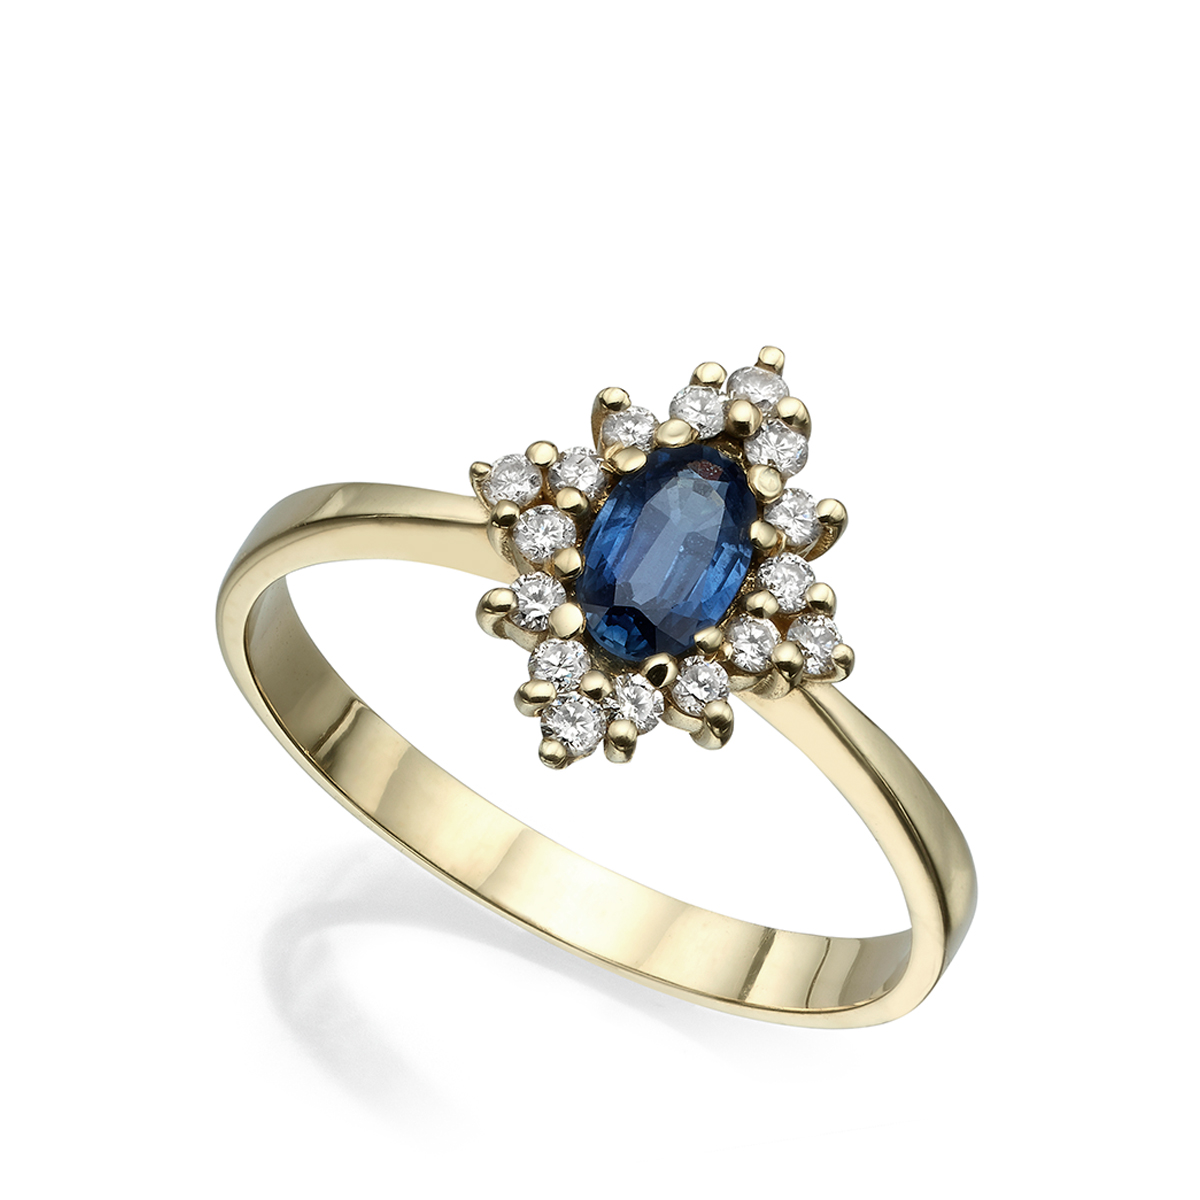 Vintage style gold ring with blue sapphire and diamonds